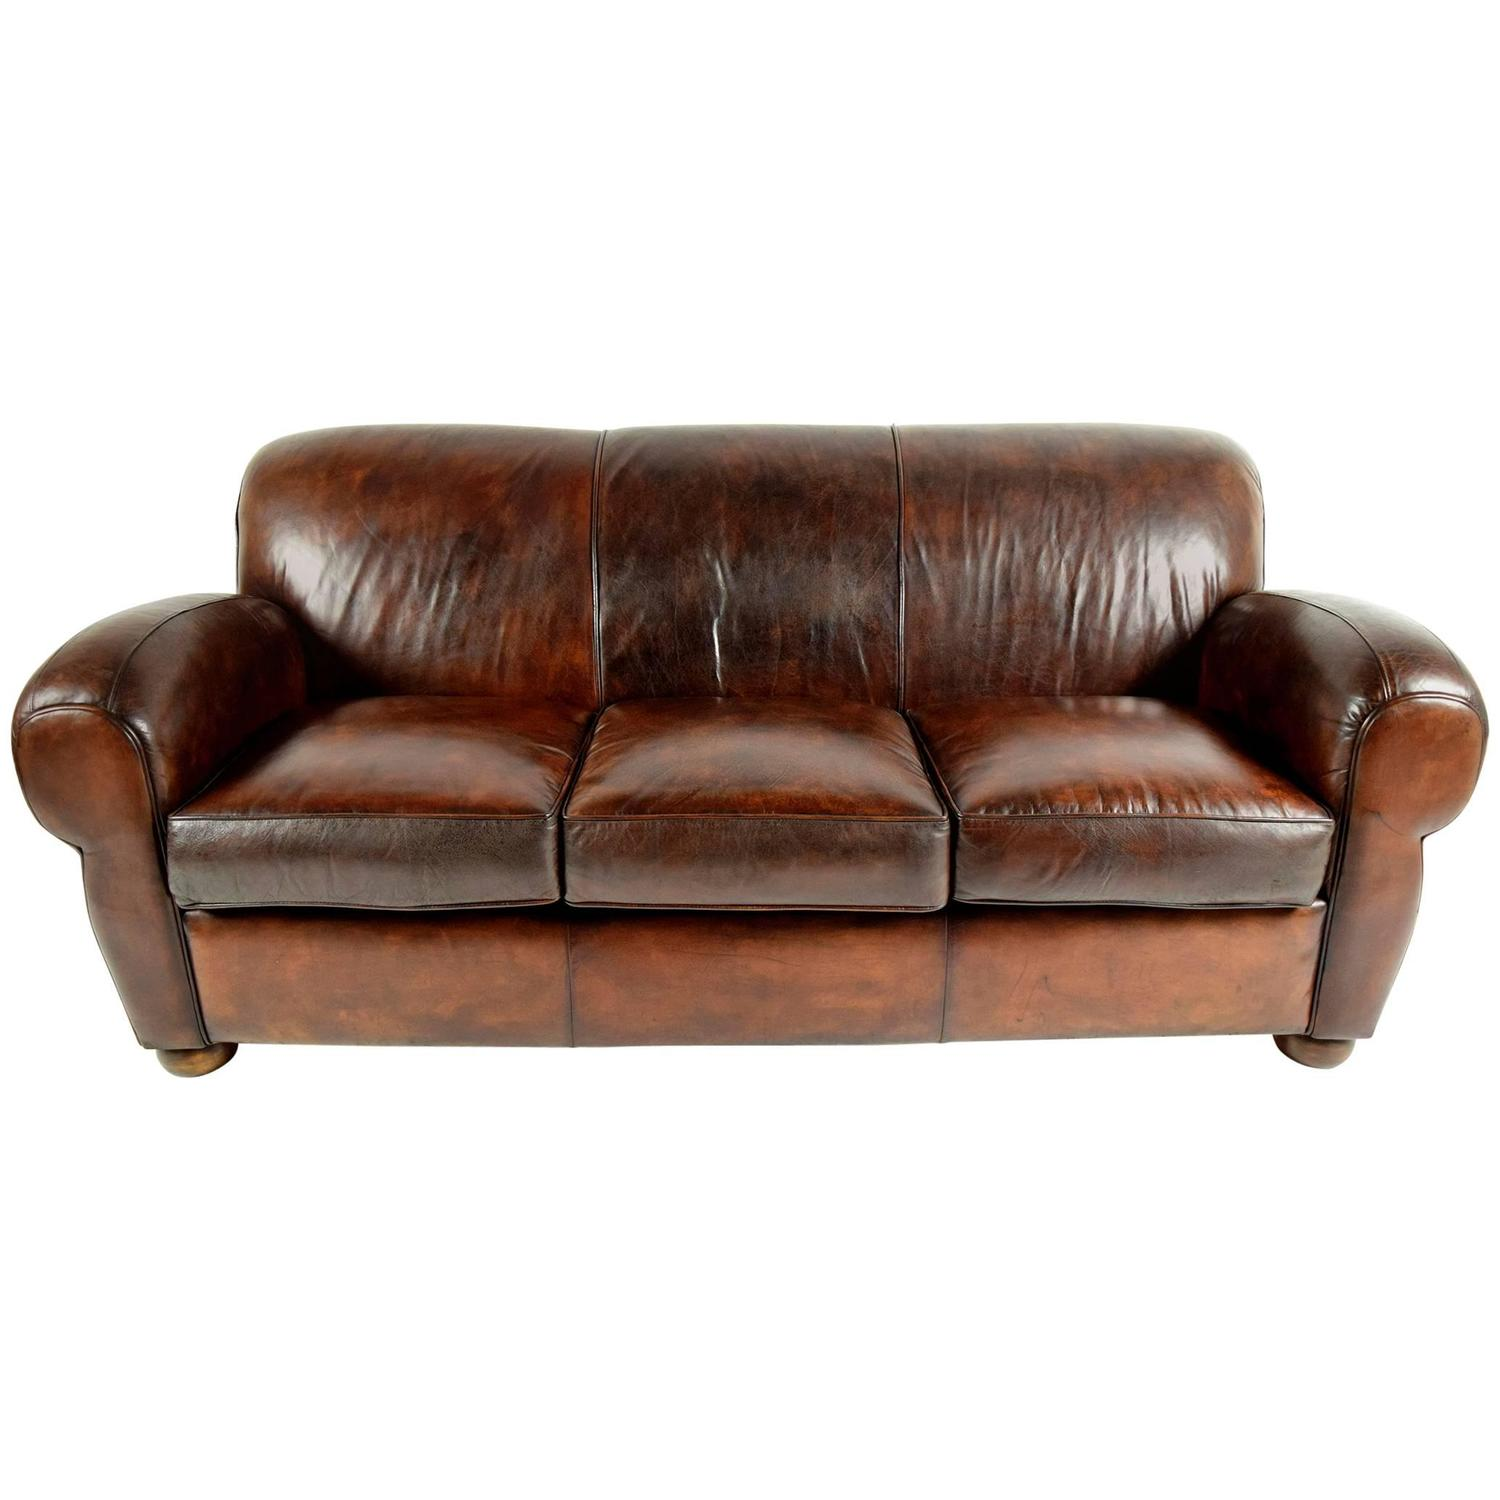 1970 39 S Vintage Club Distressed Leather Sofa For Sale At